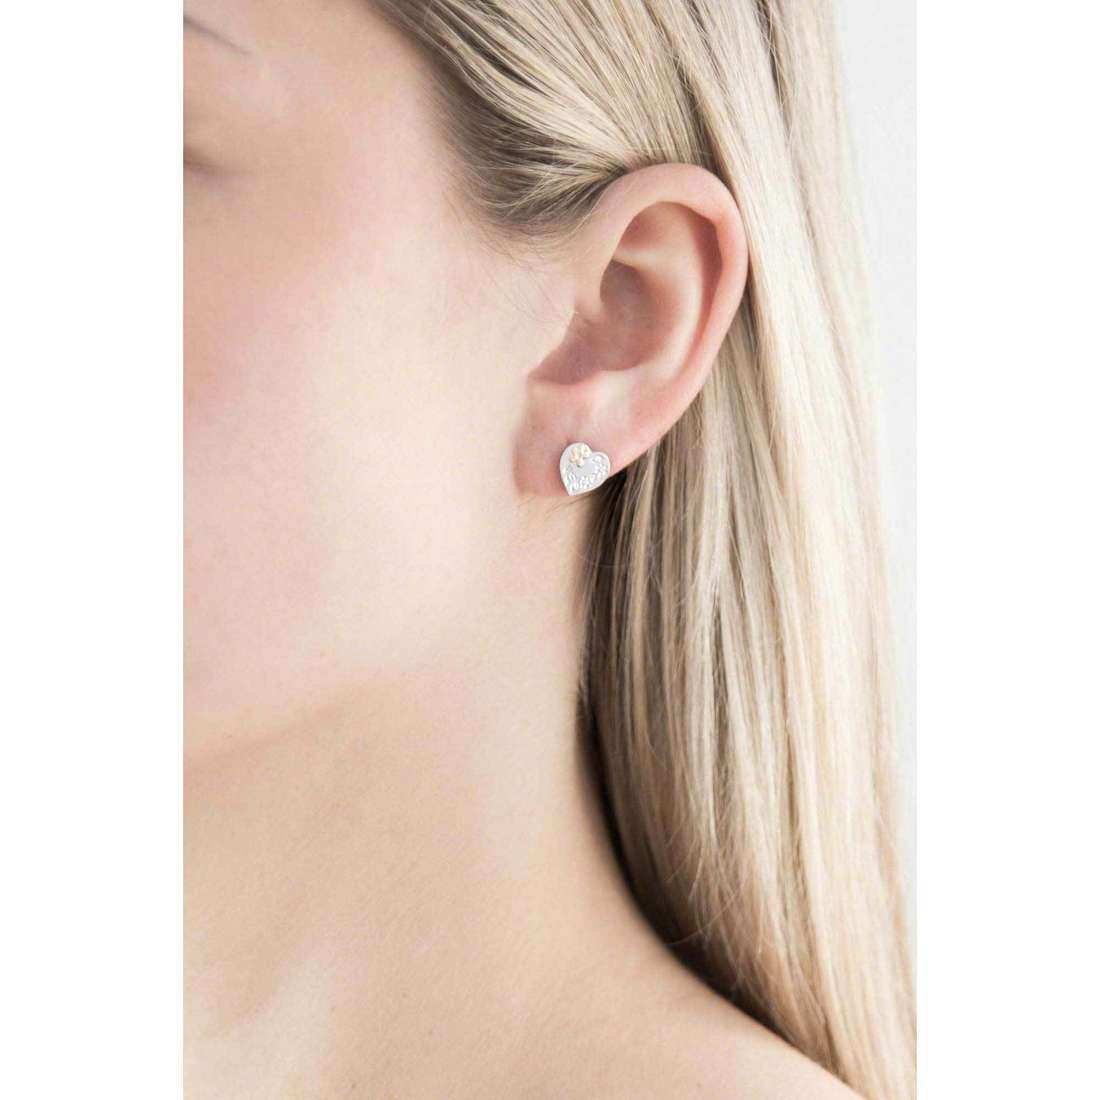 Nomination earrings Symphony woman 026250/001 indosso